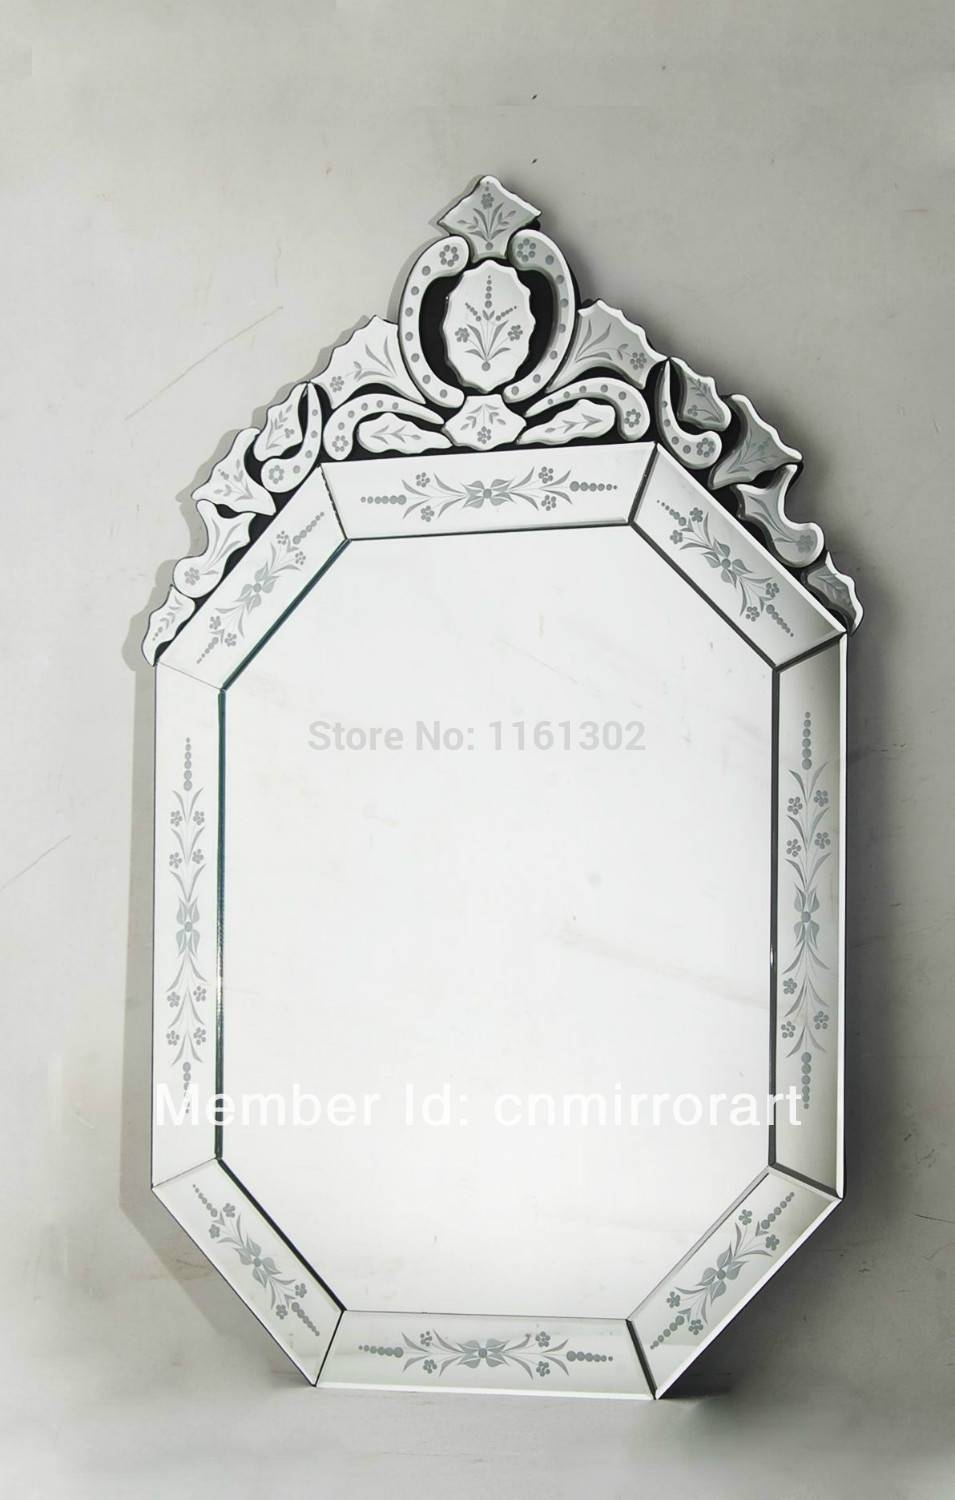 Online Buy Wholesale Venetian Mirrors From China Venetian Mirrors regarding Black Venetian Mirrors (Image 11 of 15)